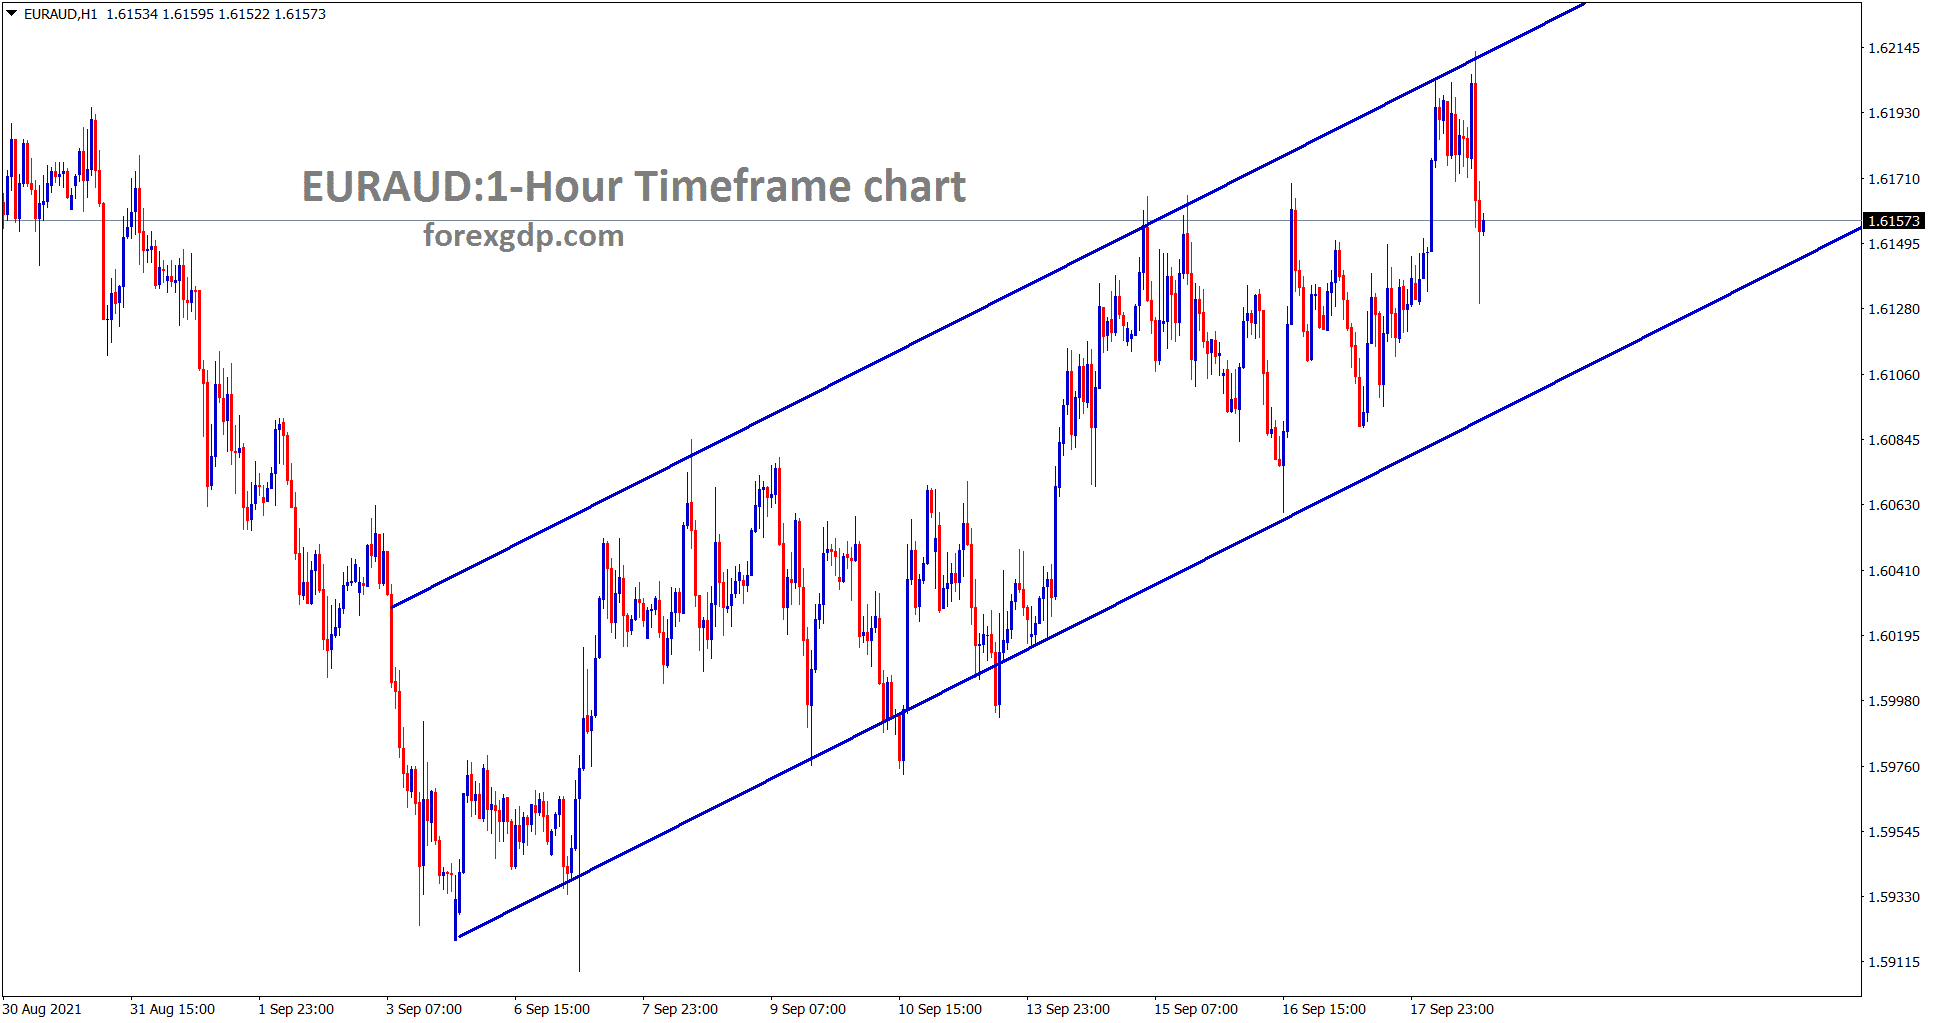 EURAUD is moving in an Ascending channel range in the 1 hour timeframe